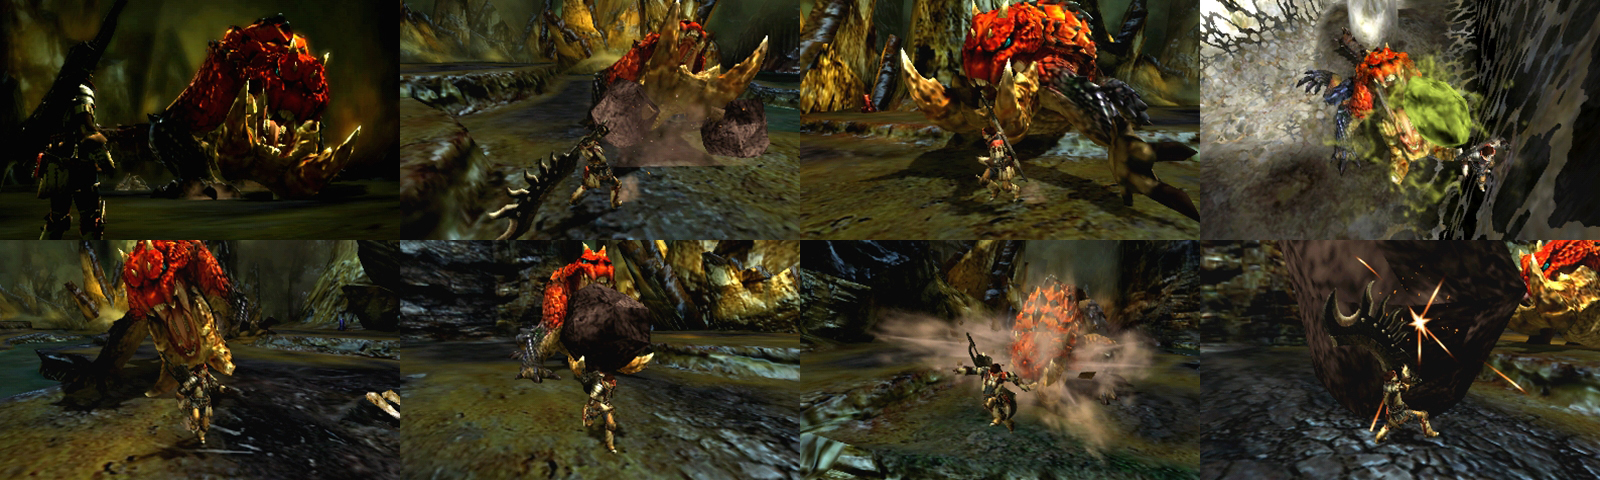 monster-hunter-4_Tetsukabura quest